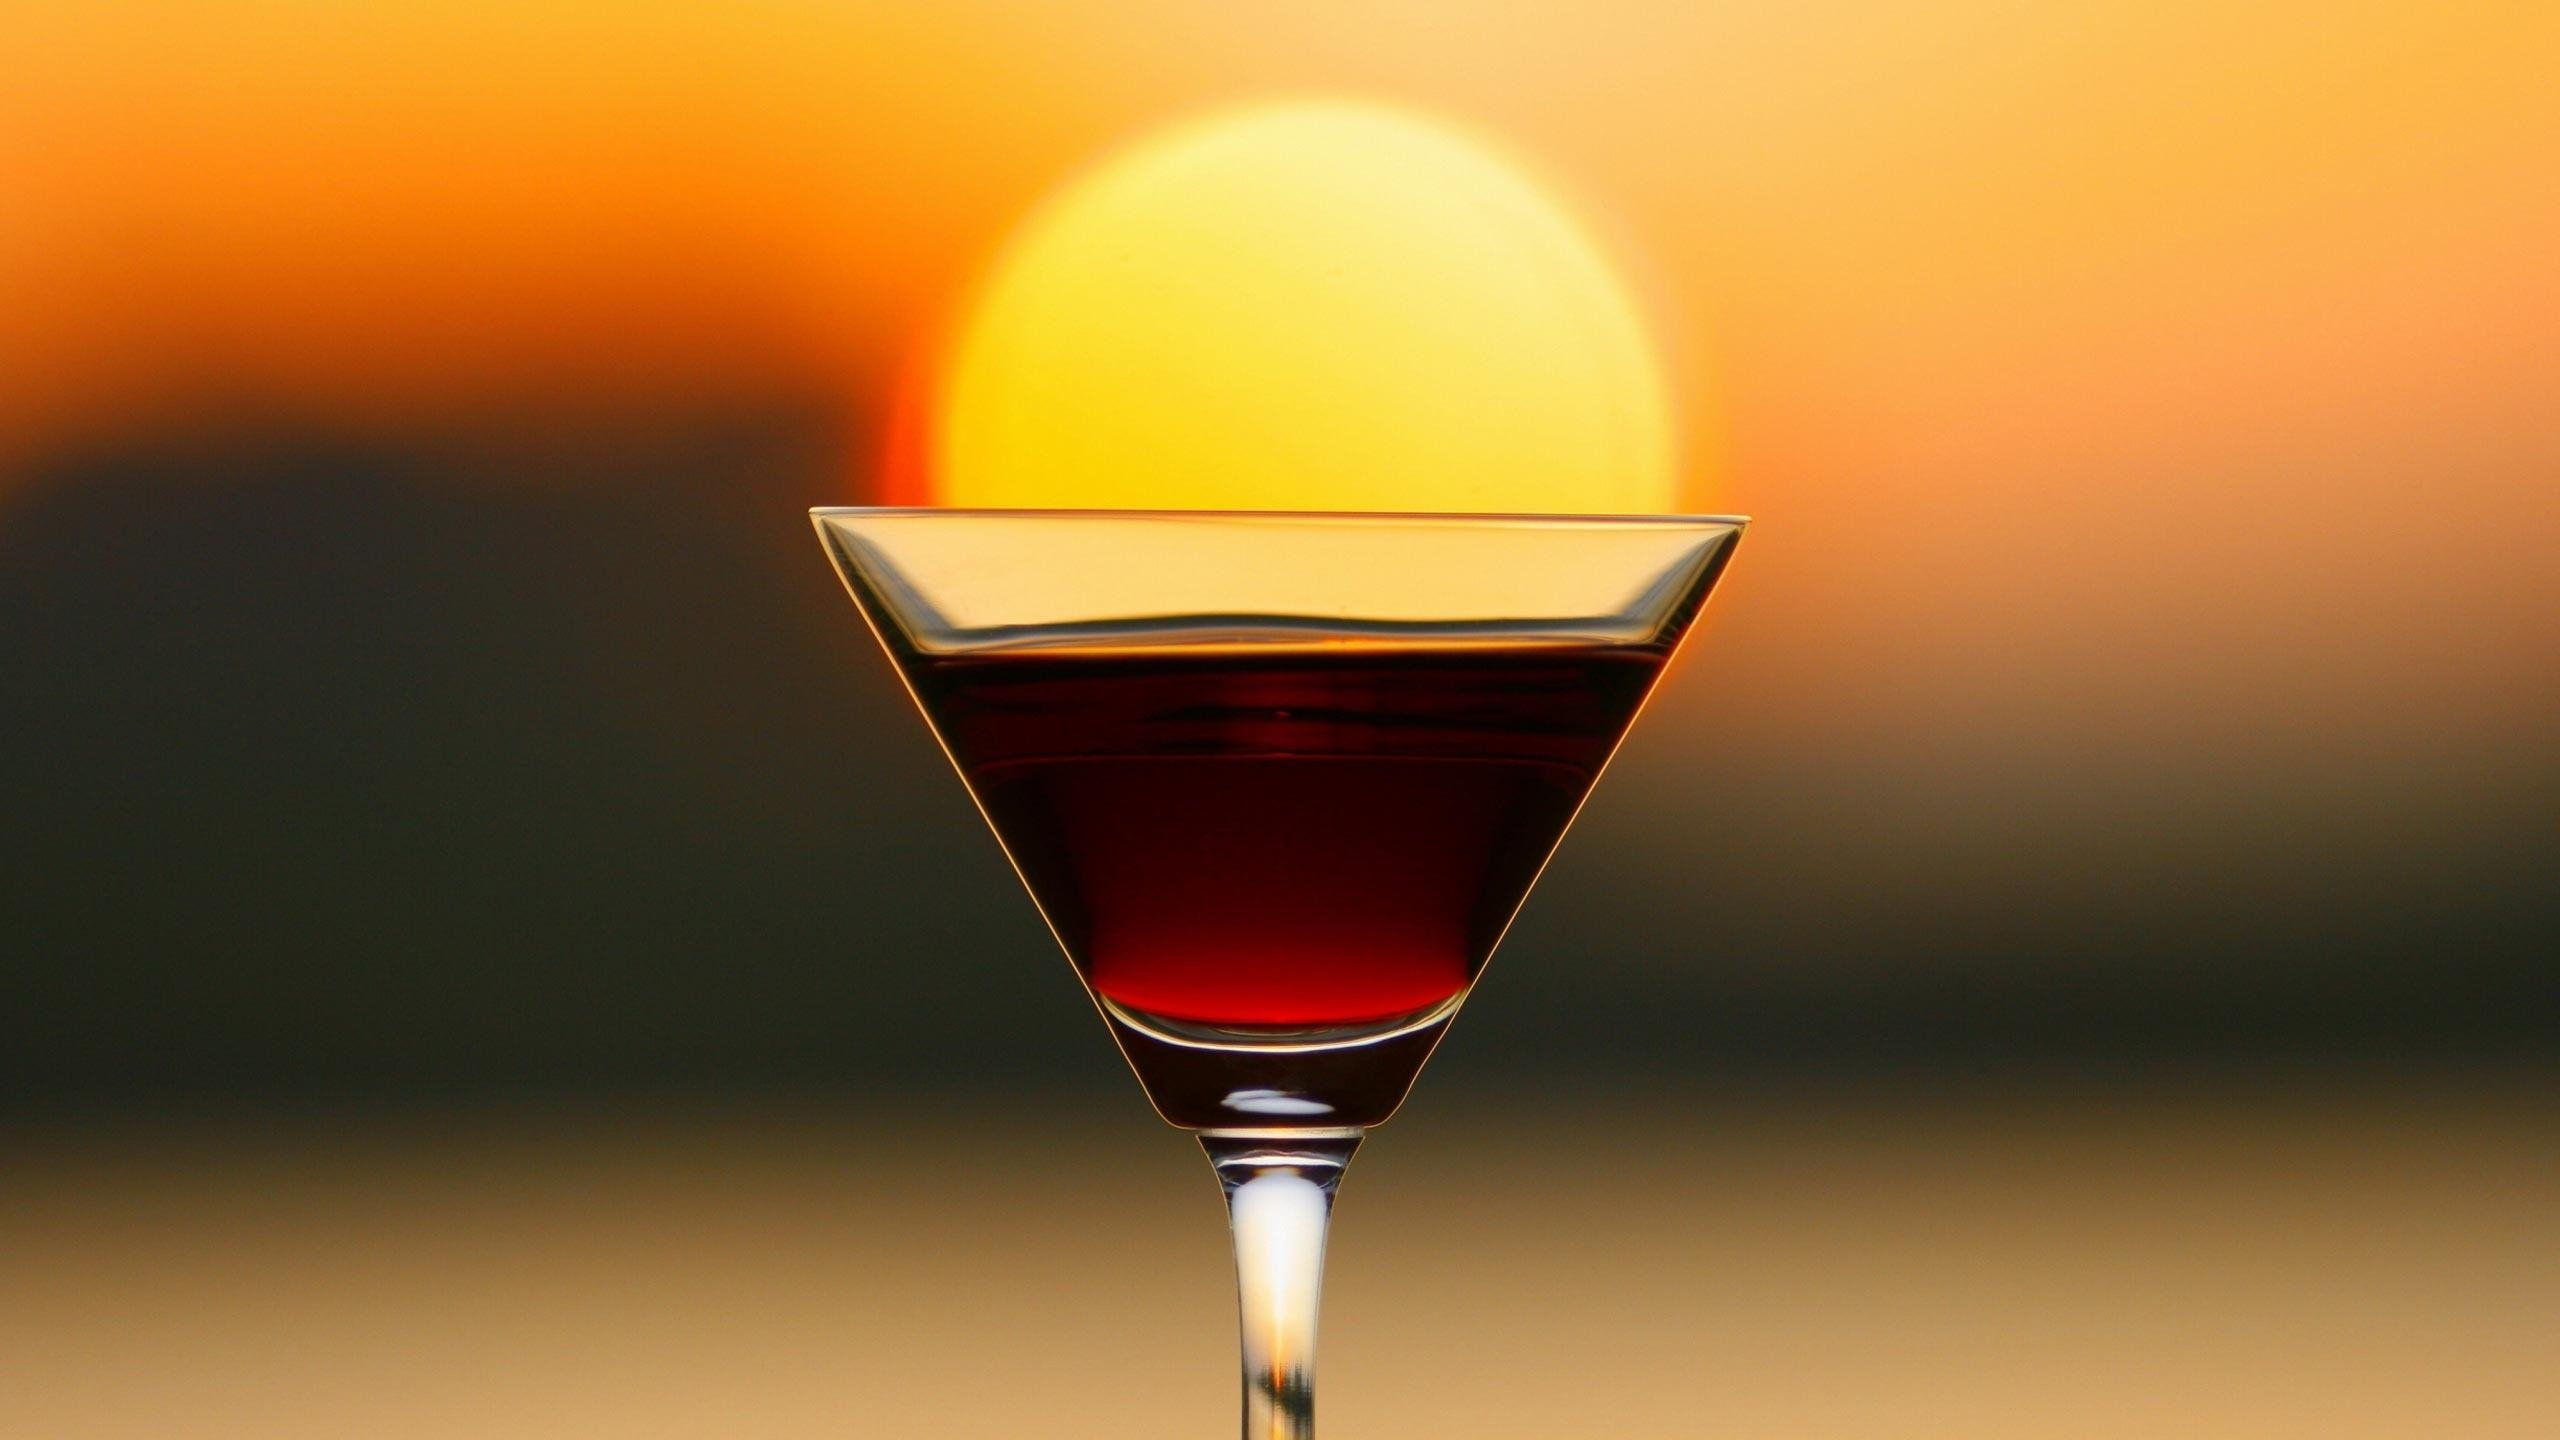 Cocktail Sunset wallpaper